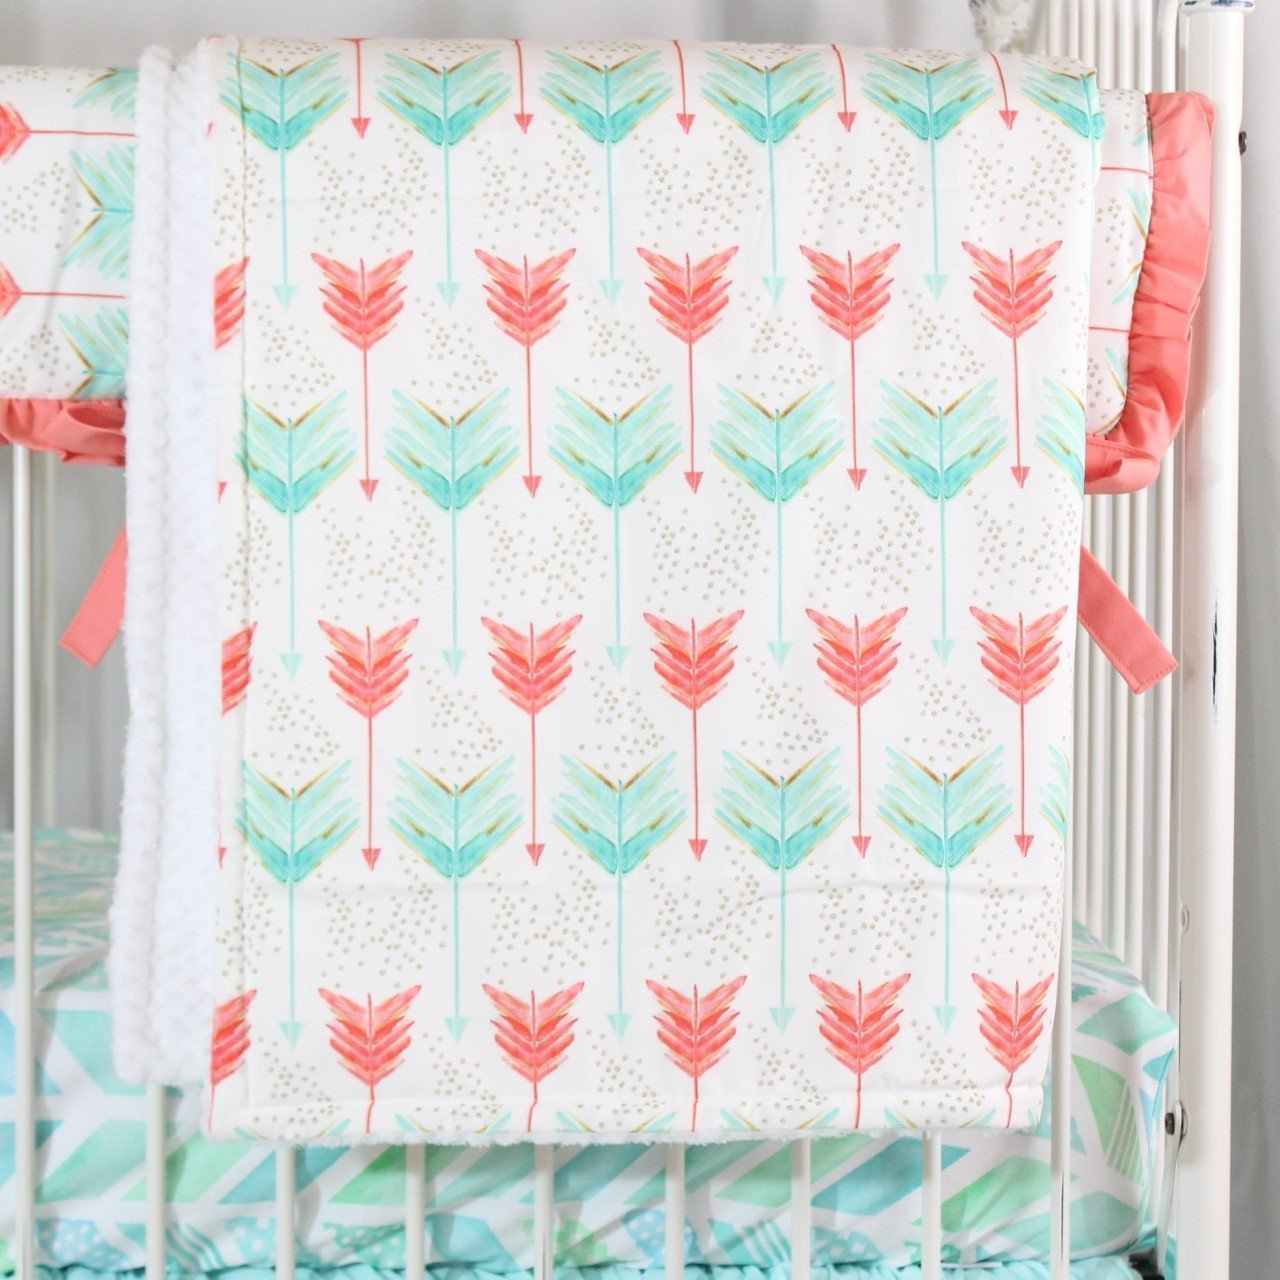 Blanket | Aqua and Coral Watercolor Herringbone Baby Bedding-Baby Blanket-Jack and Jill Boutique